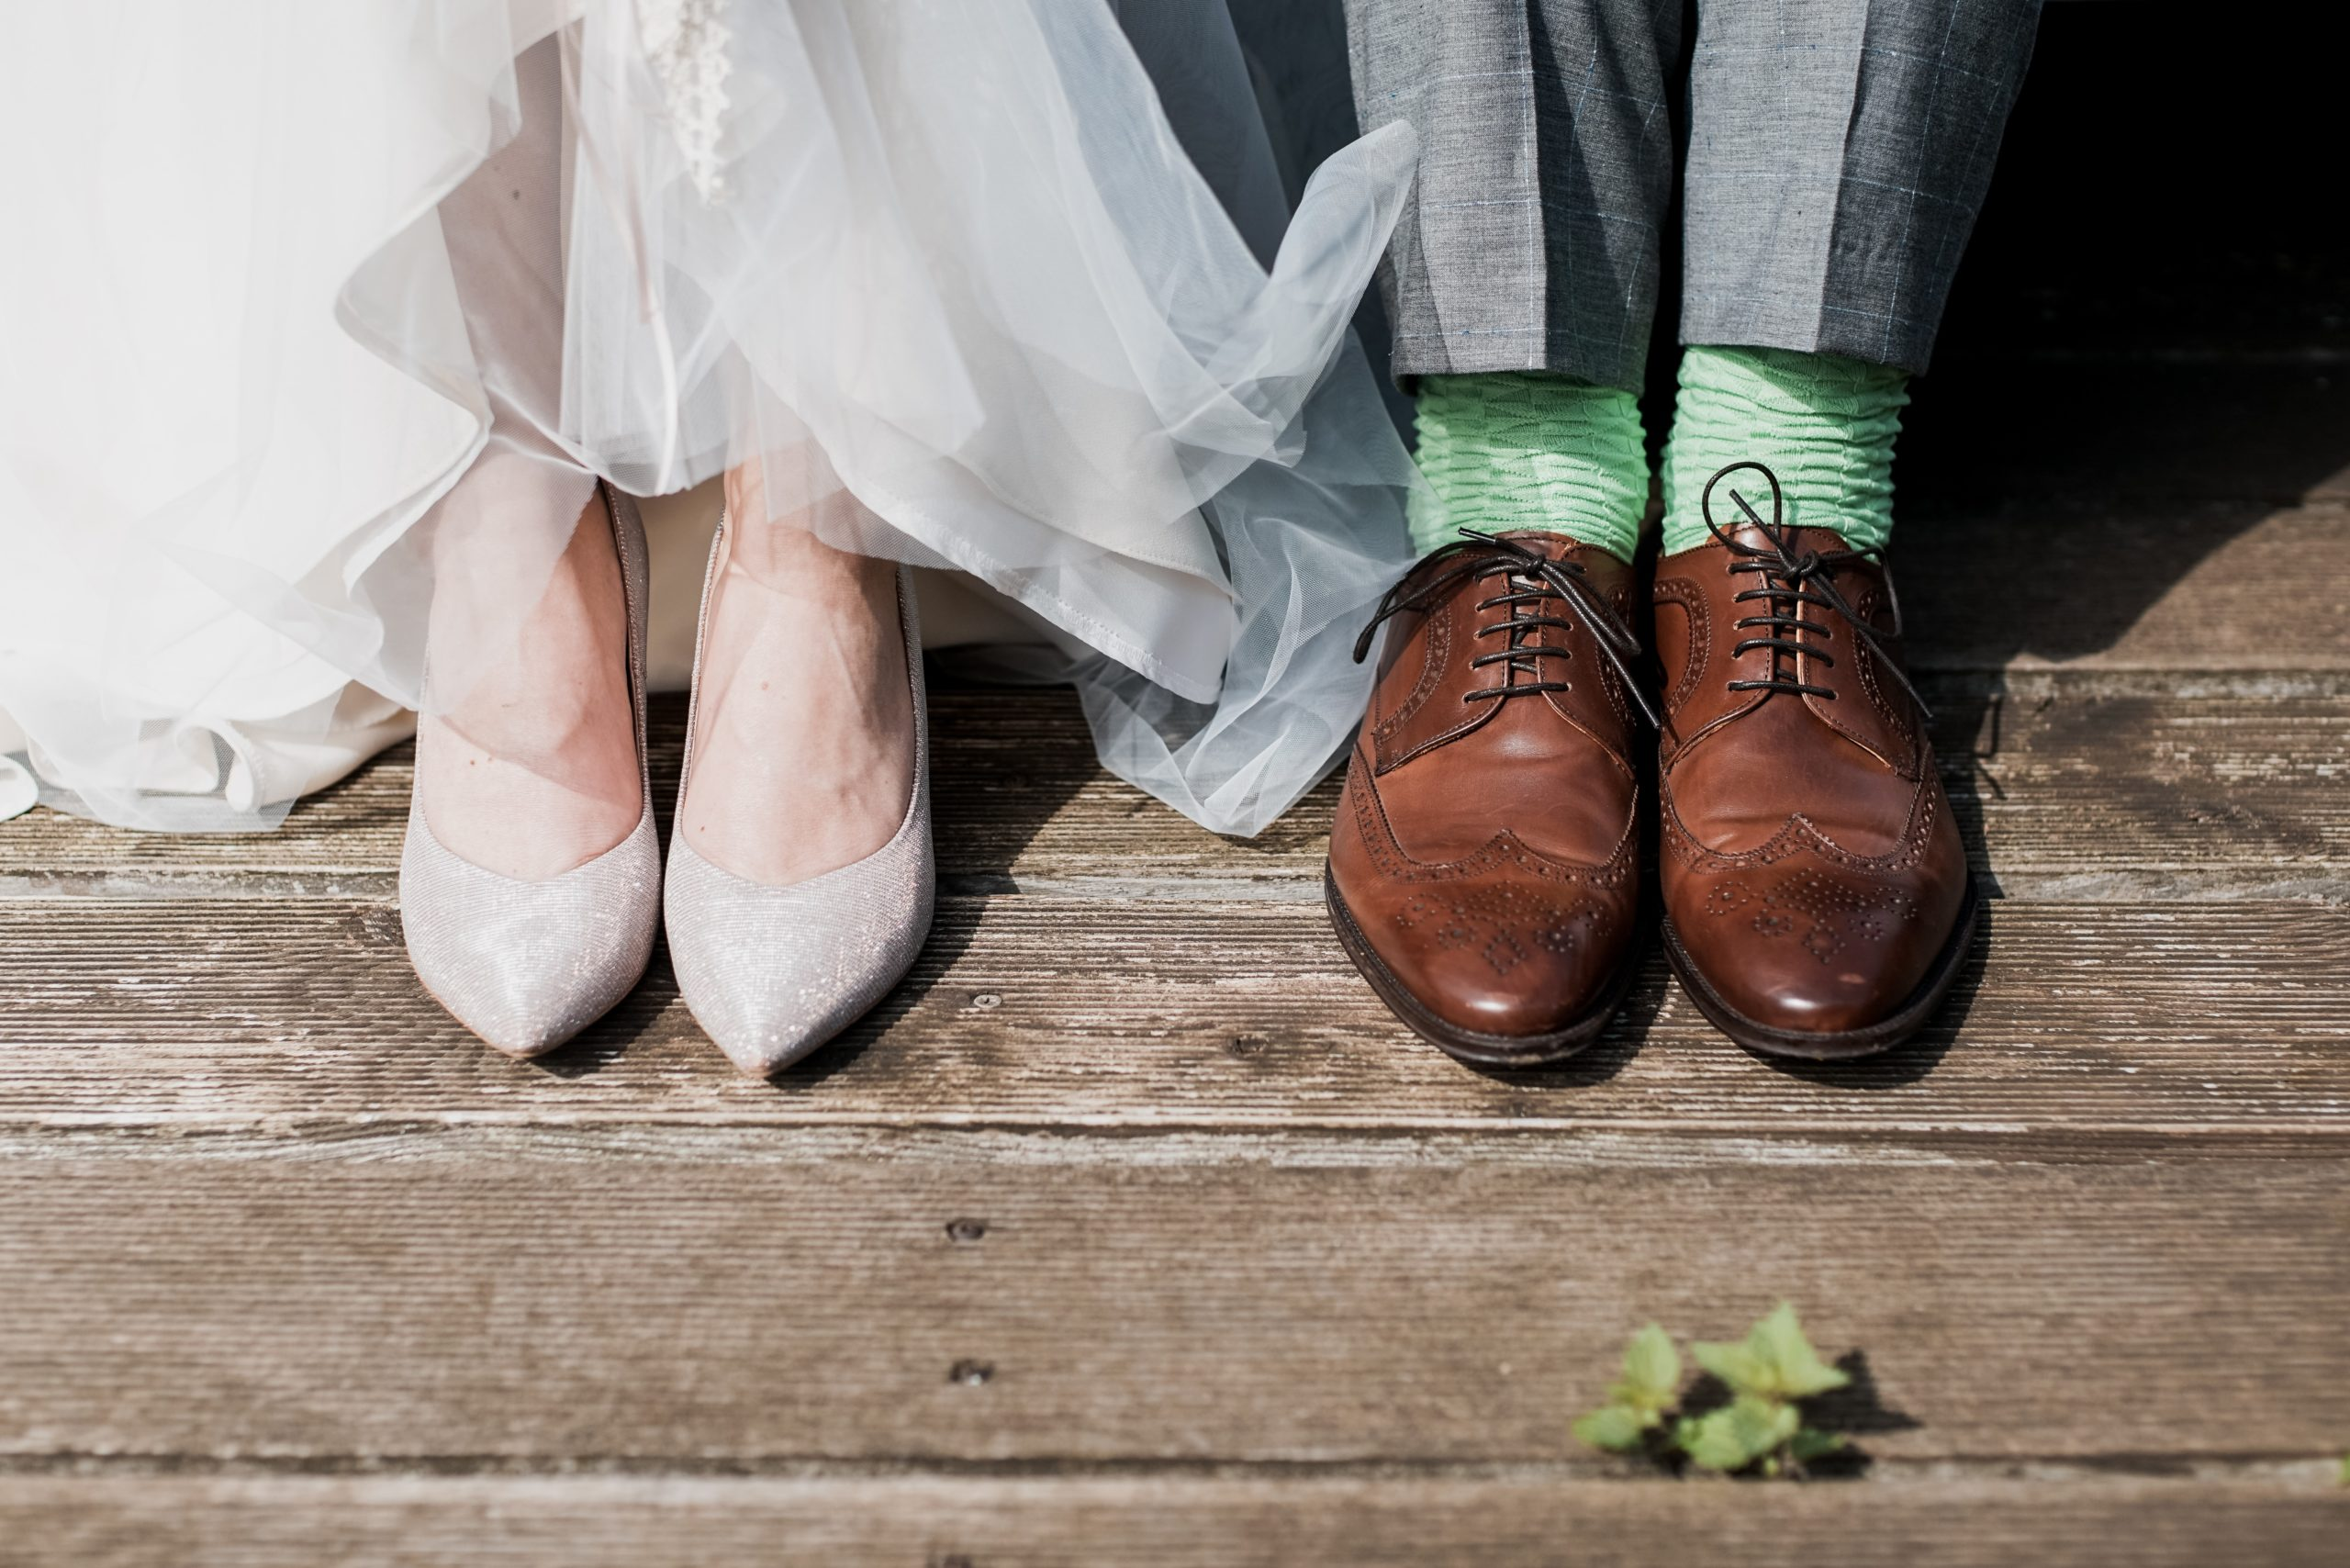 Close-up of a bride and groom standing side-by-side, shot is focused on their shoes standing on a weathered, wood floor